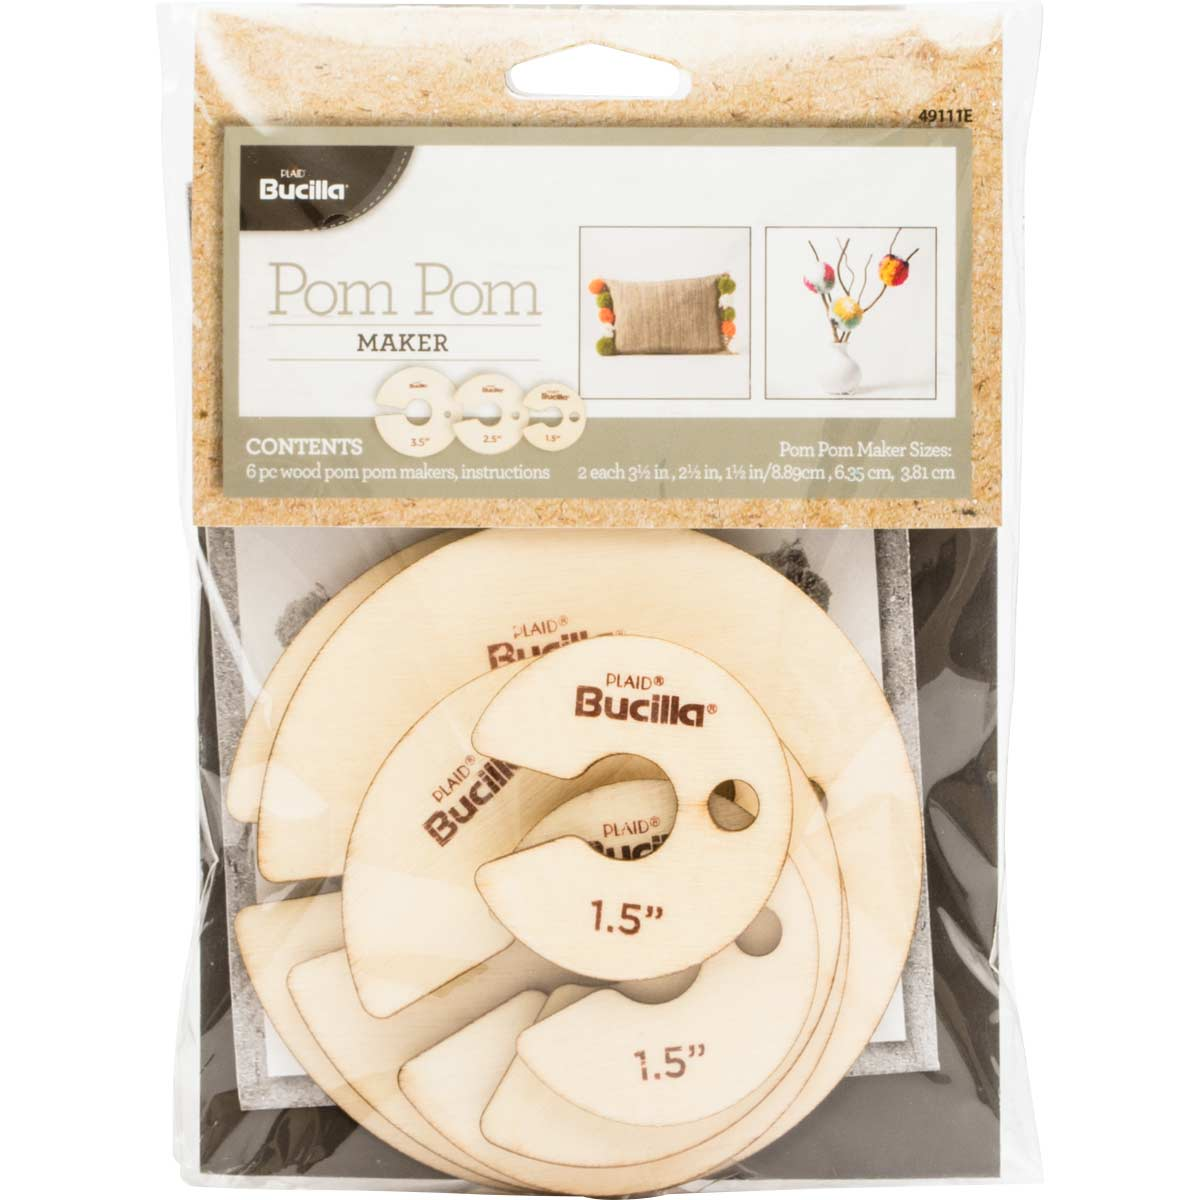 Bucilla ® Pom Pom Maker 6 pc.